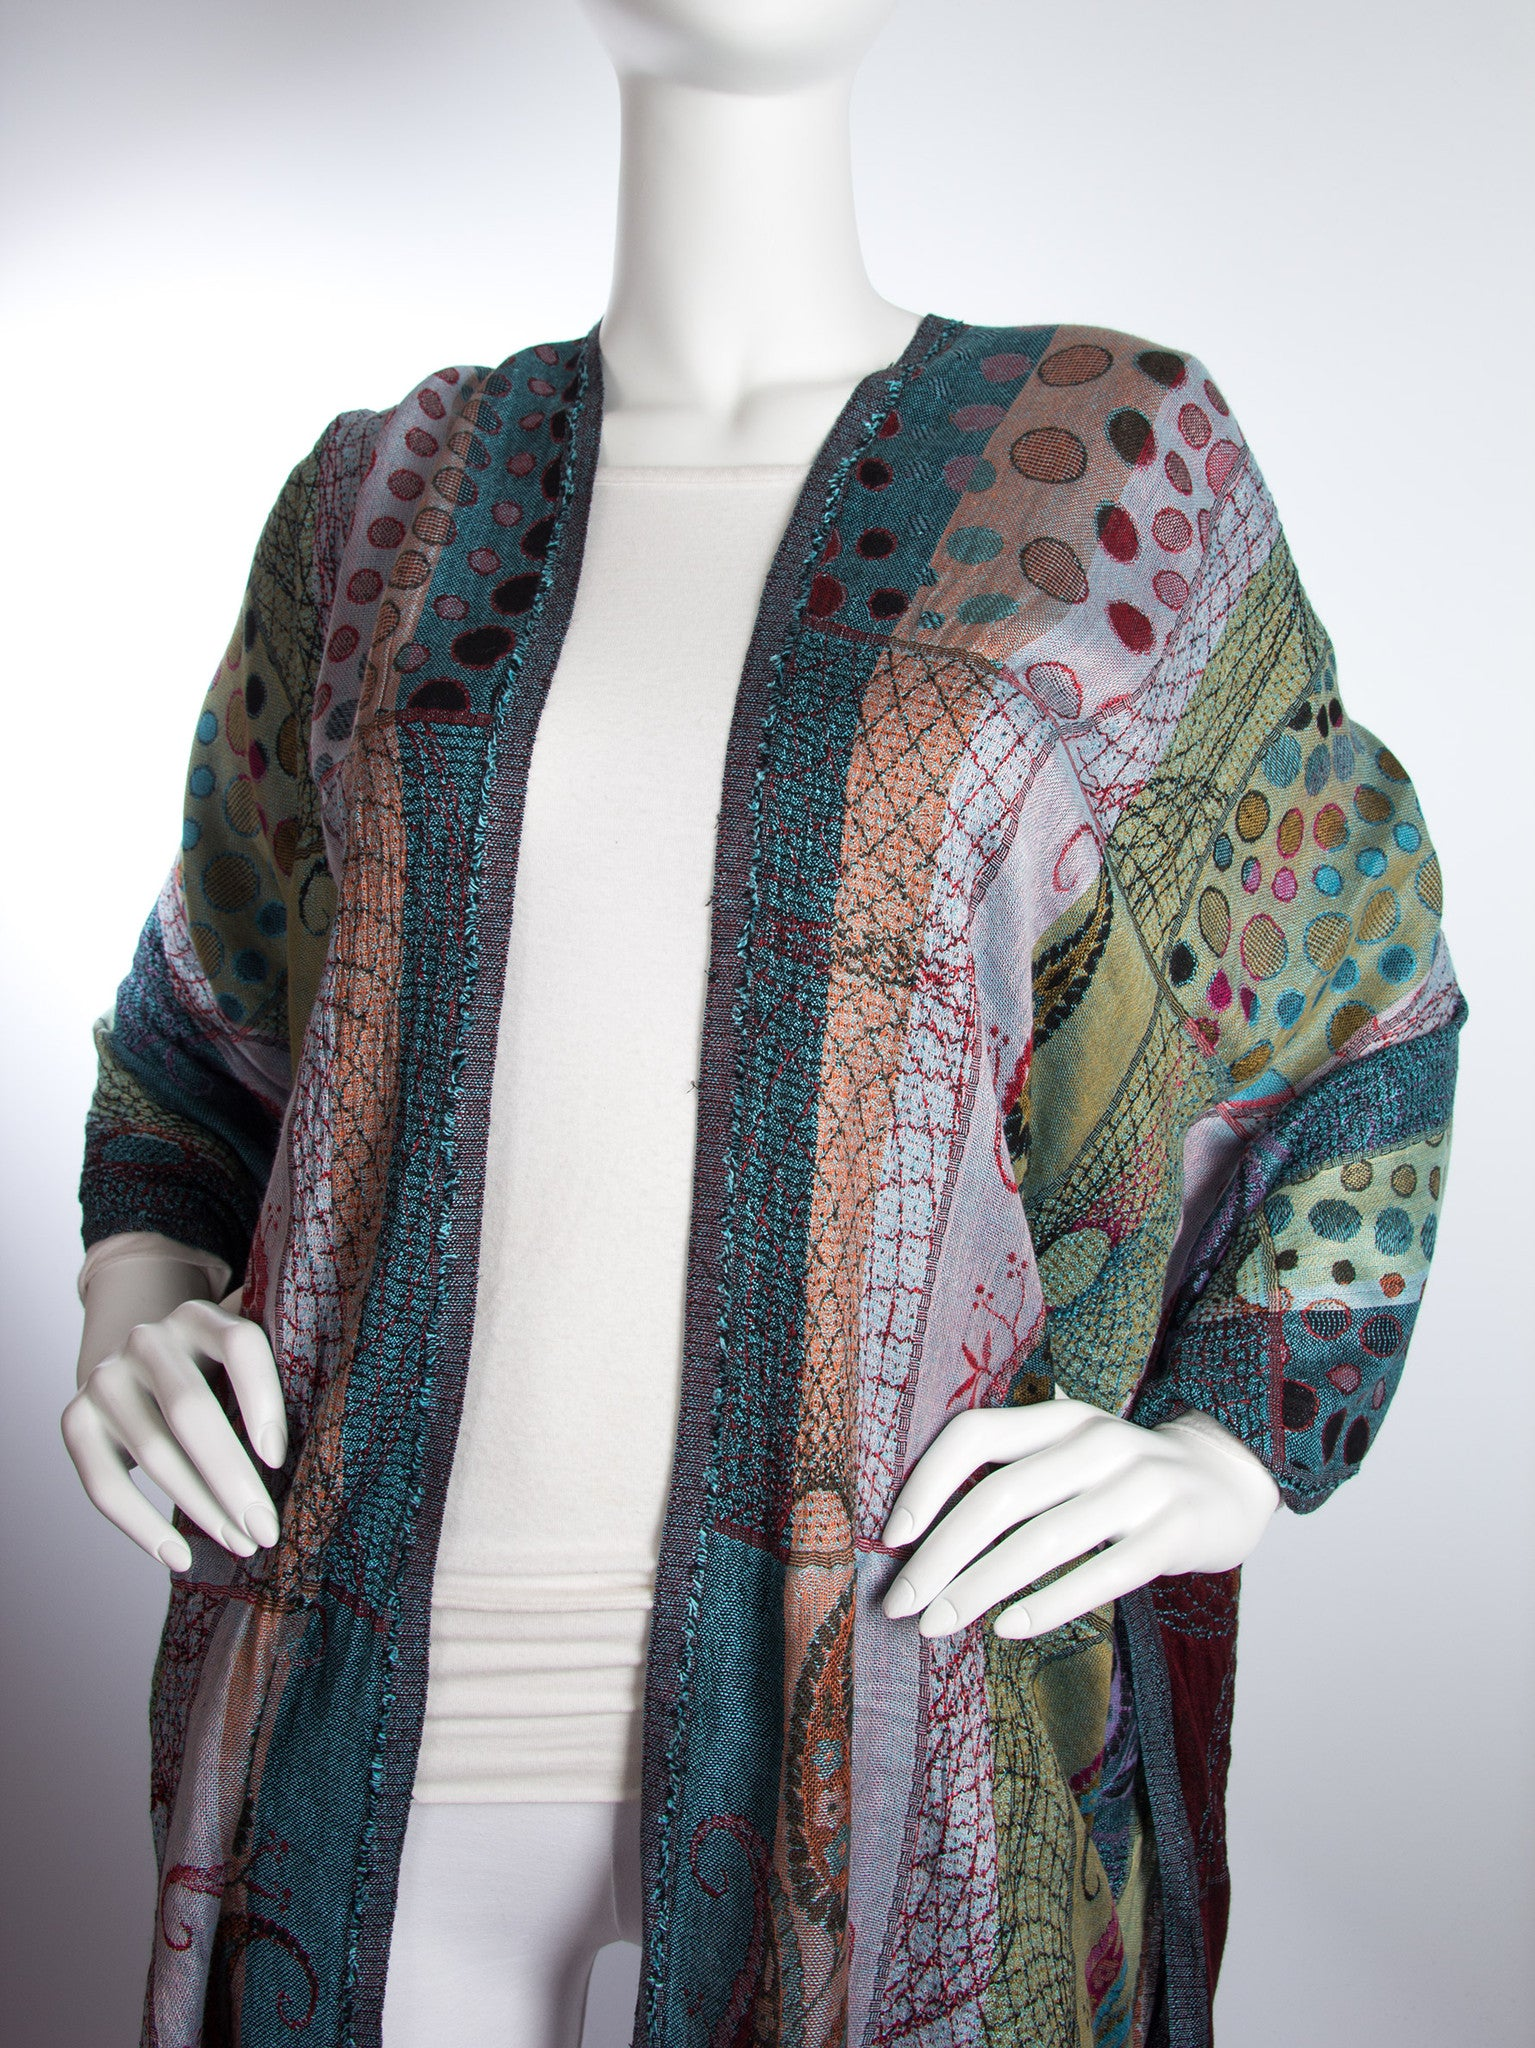 Scarves - Harina Shawl, Woven Reversible Striped Pashmina Scarf, Hand Made in India -() Bohomonde  - 4